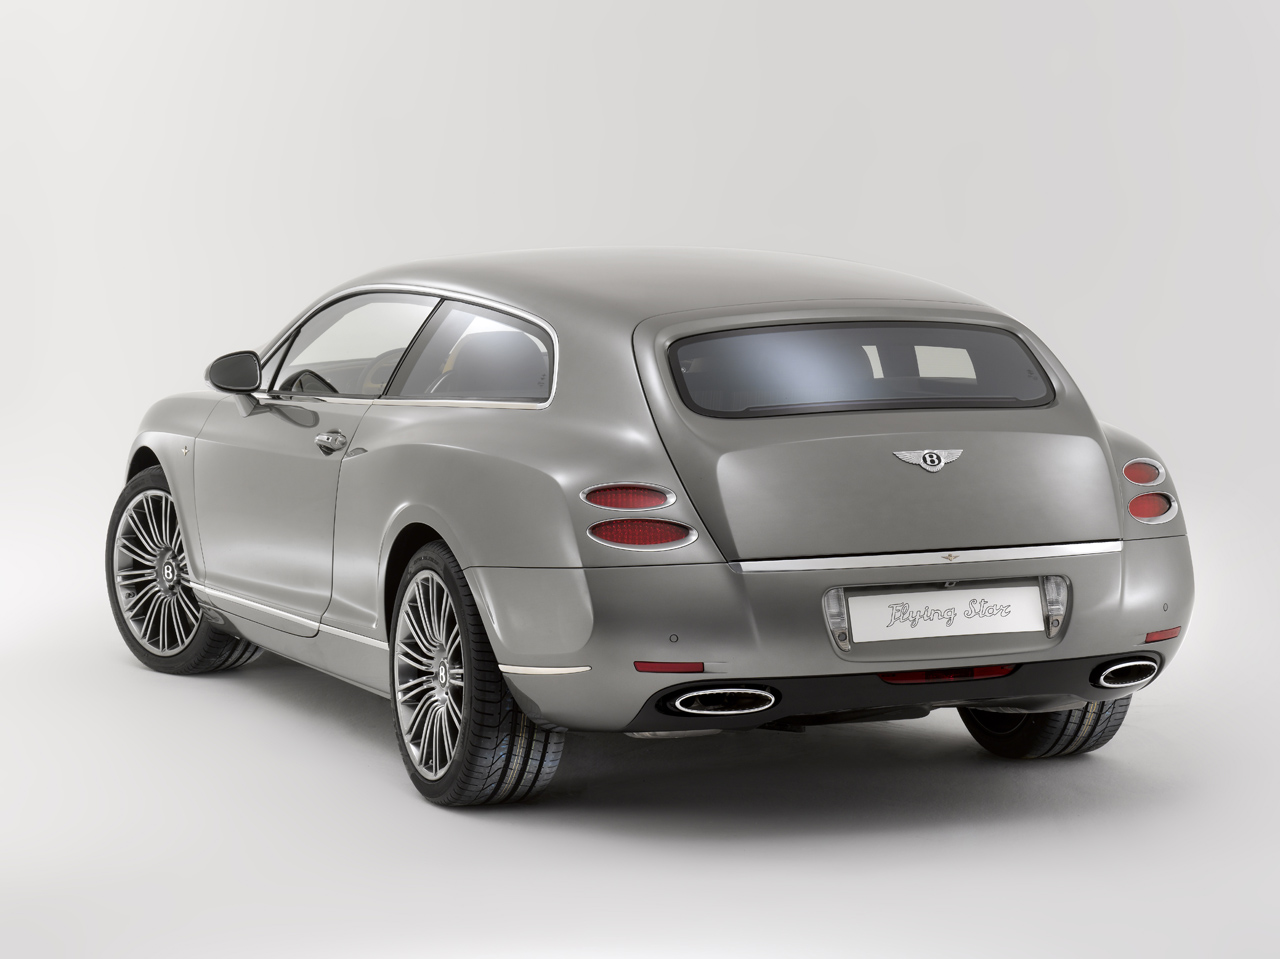 Bentley continental flying star at geneva it works to bentleys benefit to cooperate because they dont have to undertake the engineering and associated cost to produce the model vanachro Choice Image